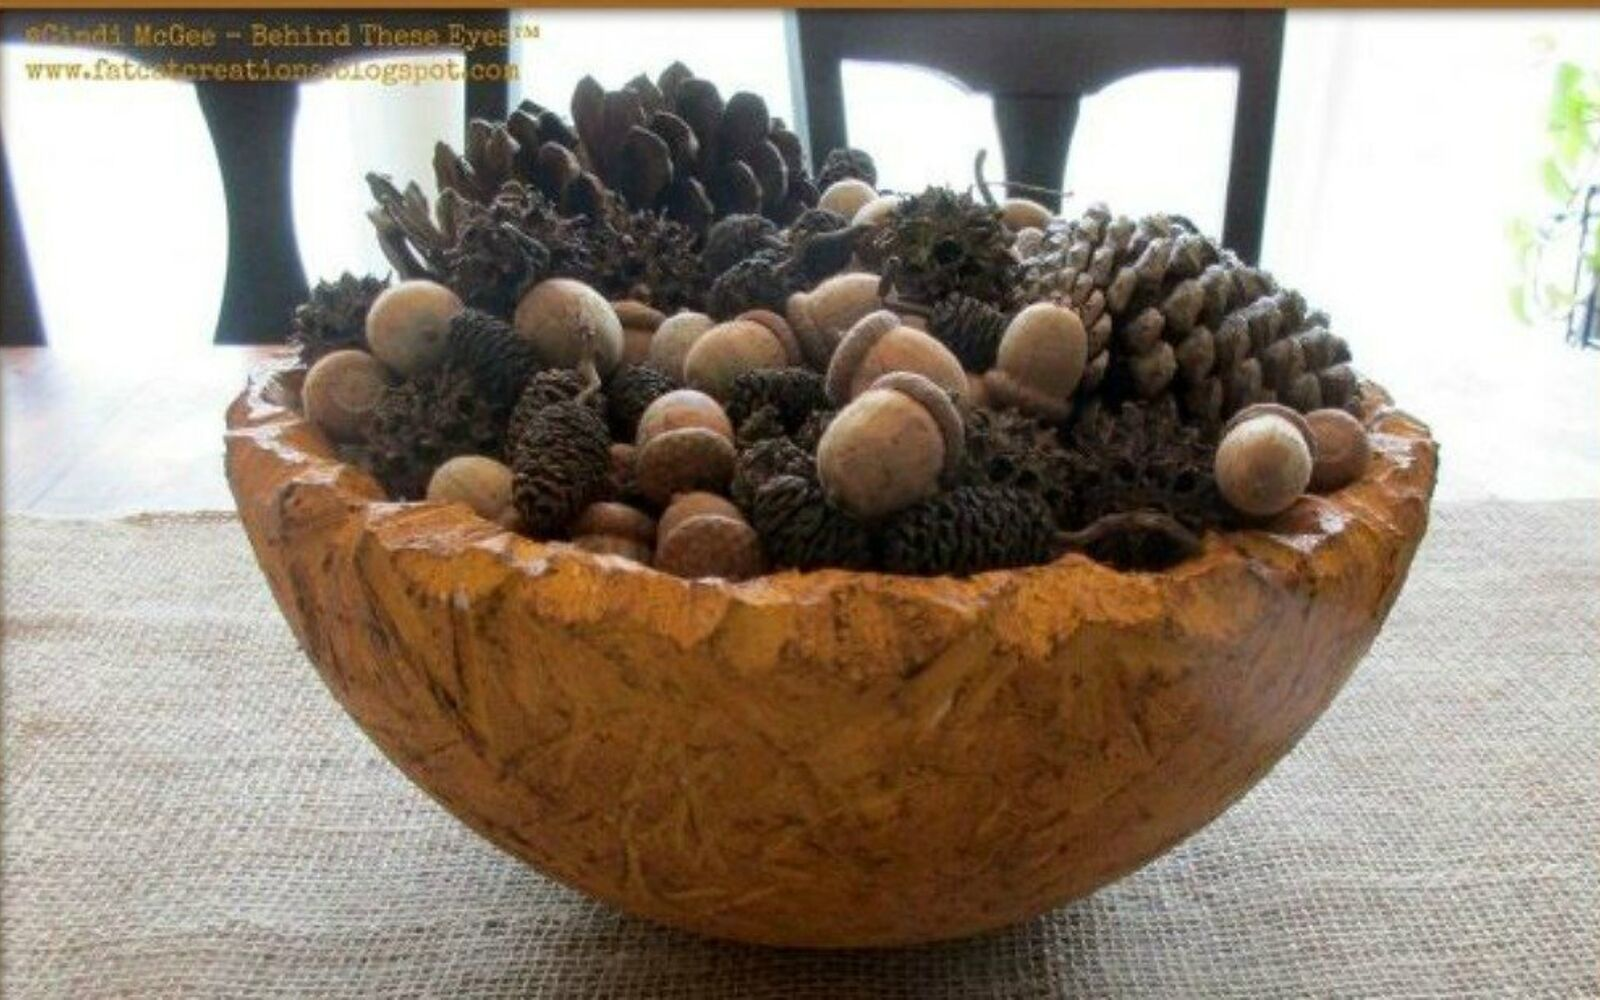 s cut up styrofoam for these breathtaking christmas ideas, christmas decorations, Form them into a wood carved bowl